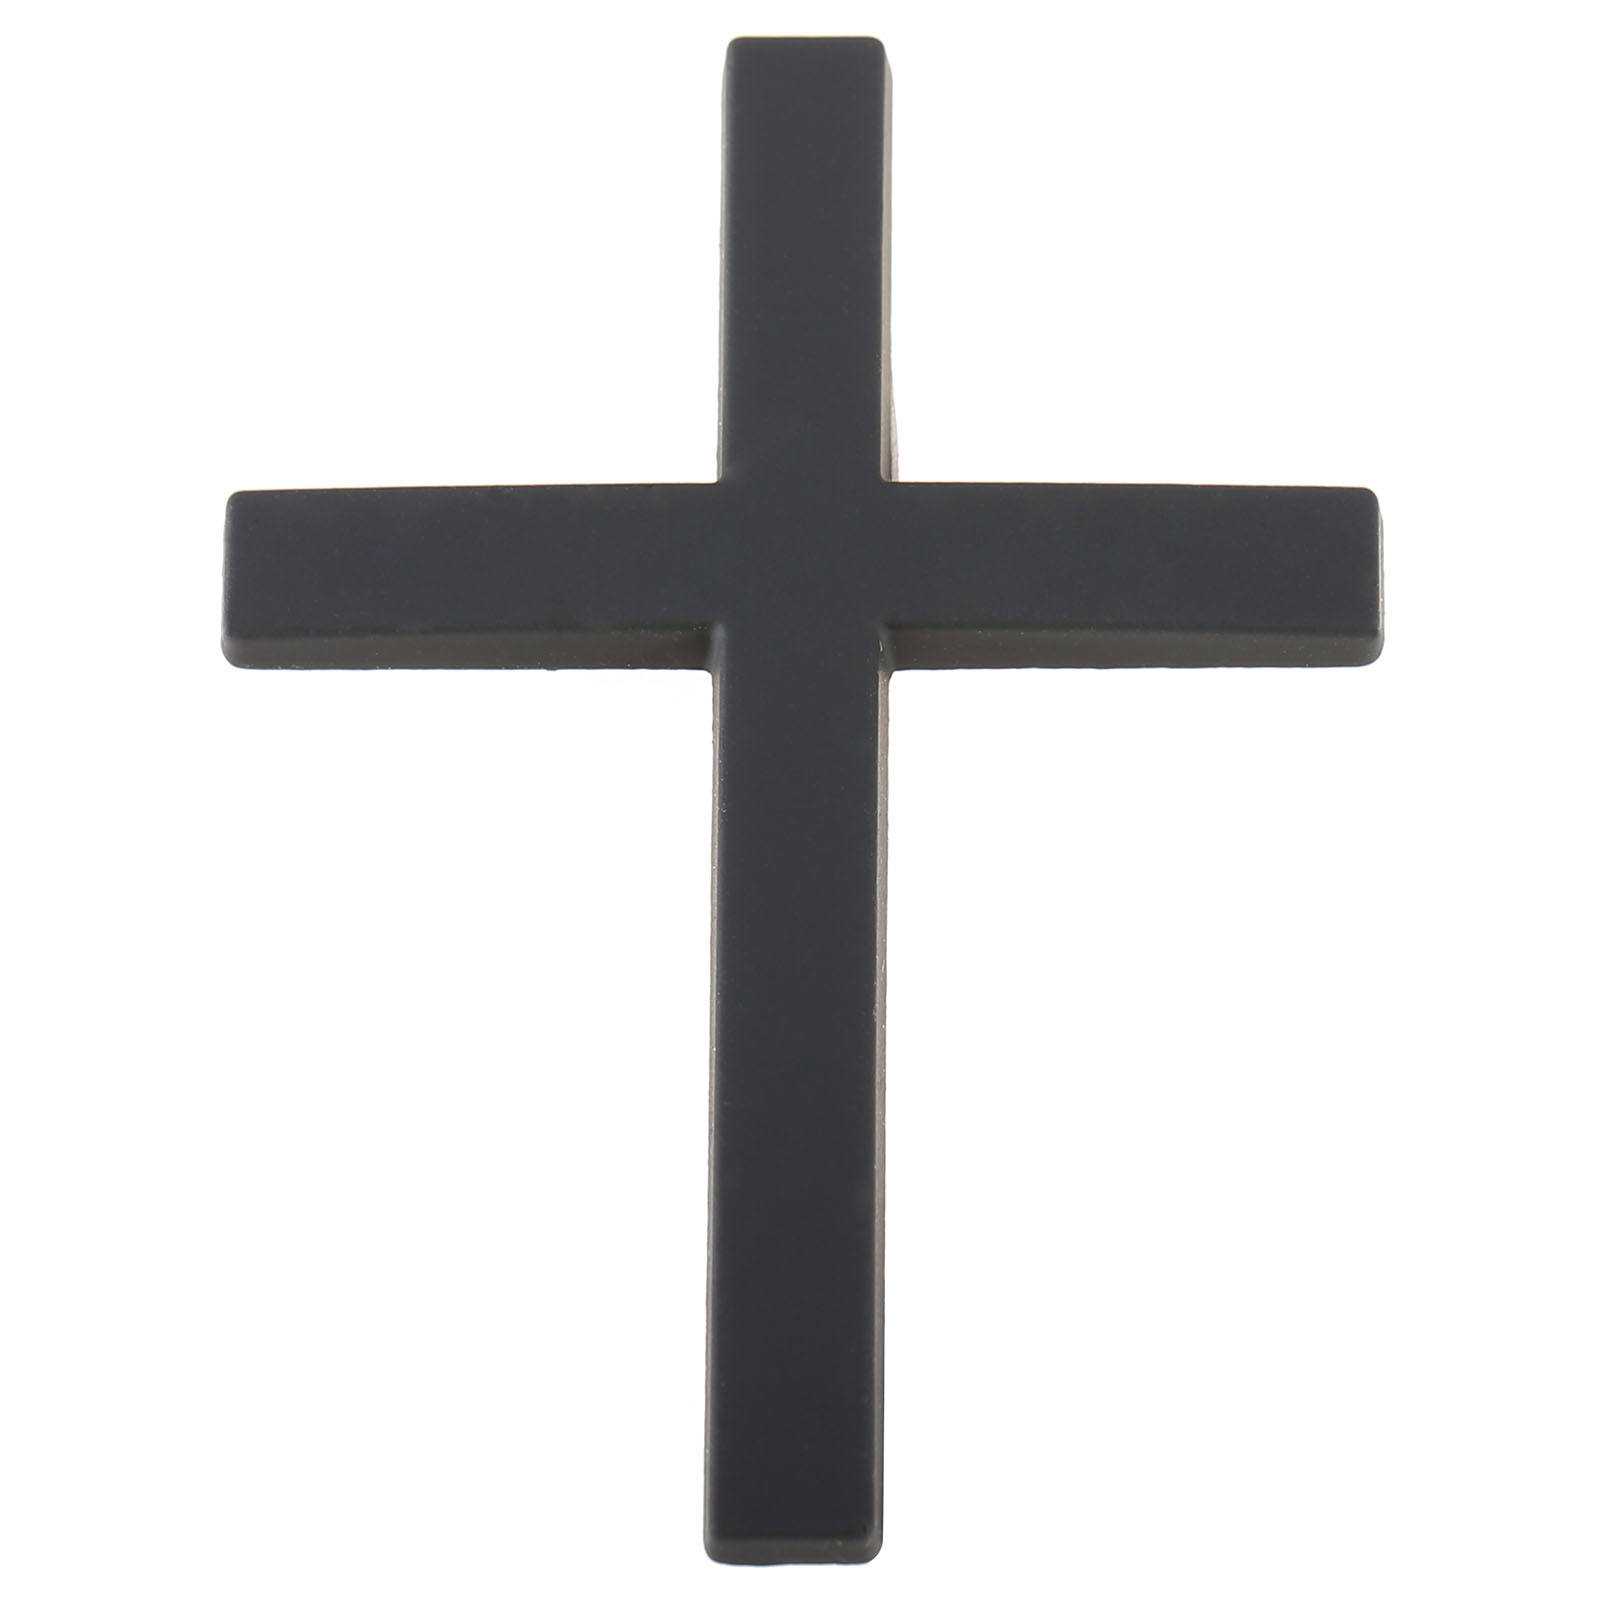 3D Metal Christian Cross Car Side Body Trunk Emblem Badge Sticker Decal Black